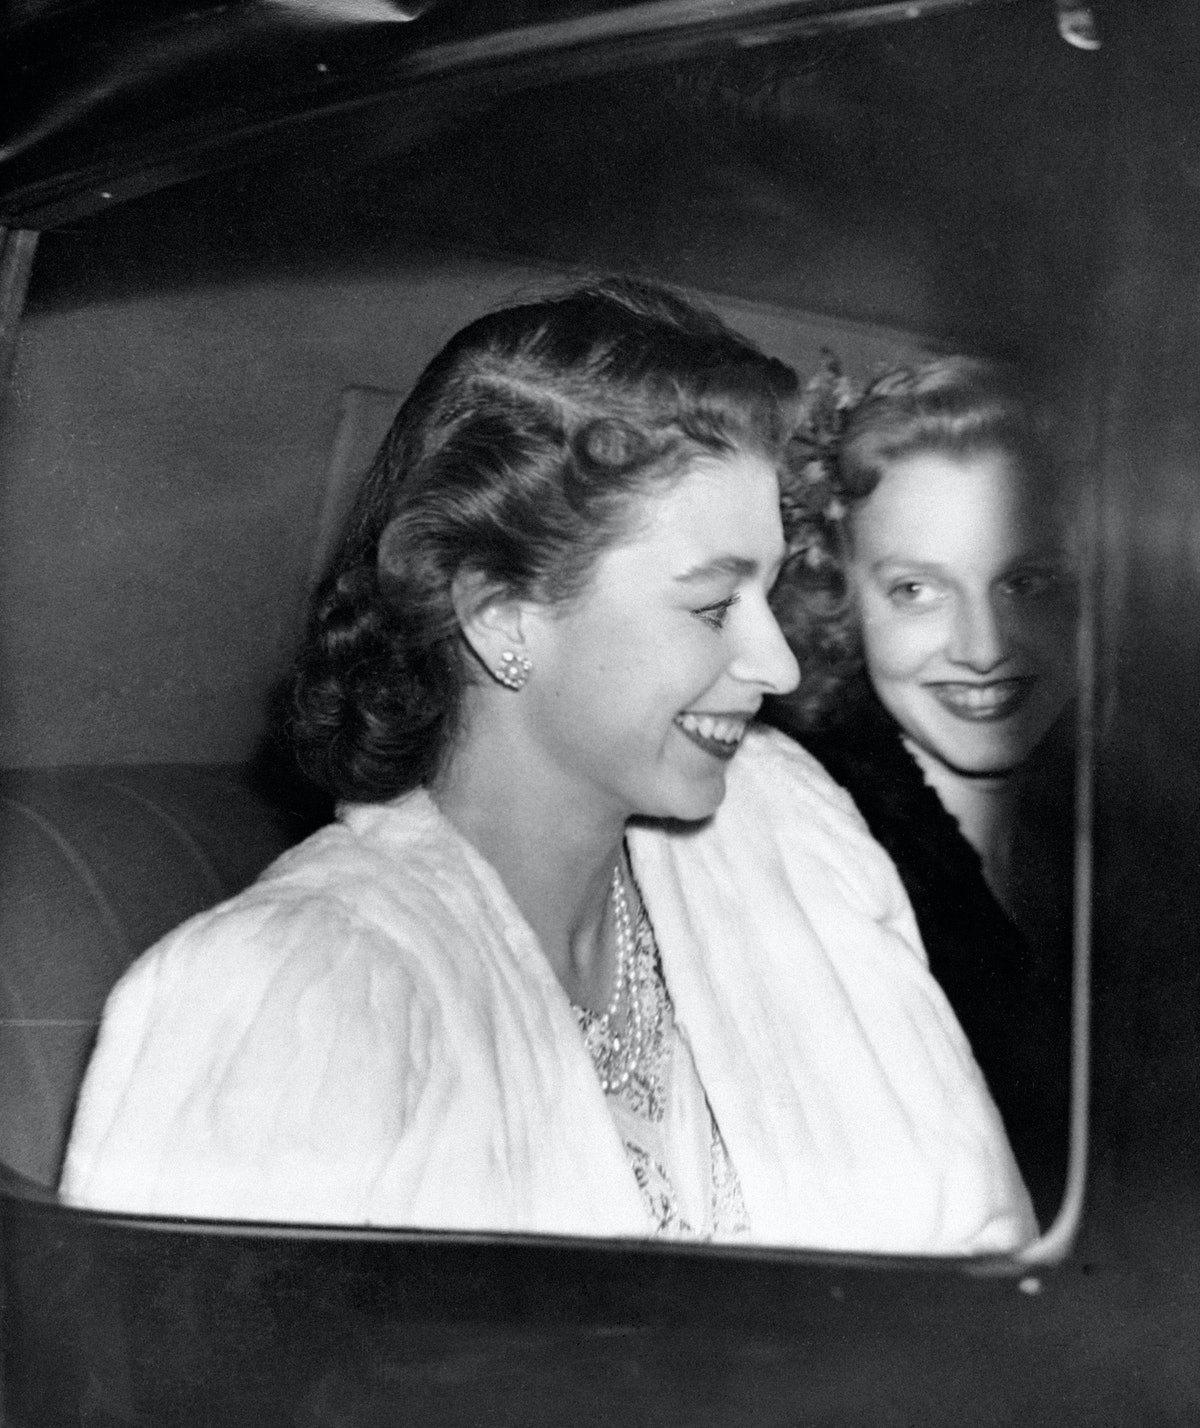 Princess Elizabeth driving from Buckingham Palace, the day before the announcement by the King of the engagement of Princess Elizabeth and Lieutenant Philip Mountbatten.   (Photo by PA Images via Getty Images)